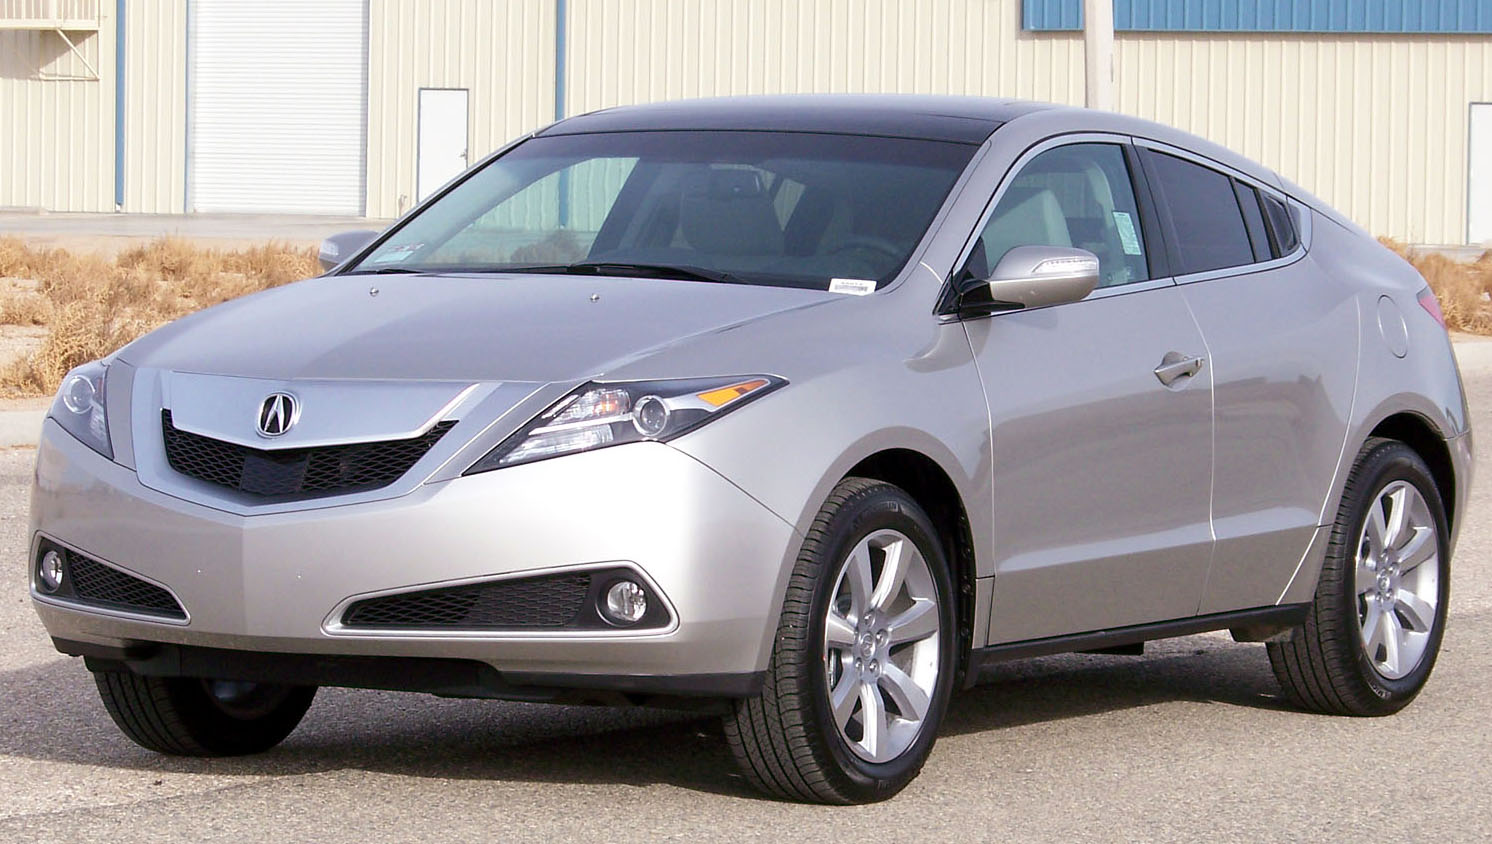 Pictures of acura zdx #10